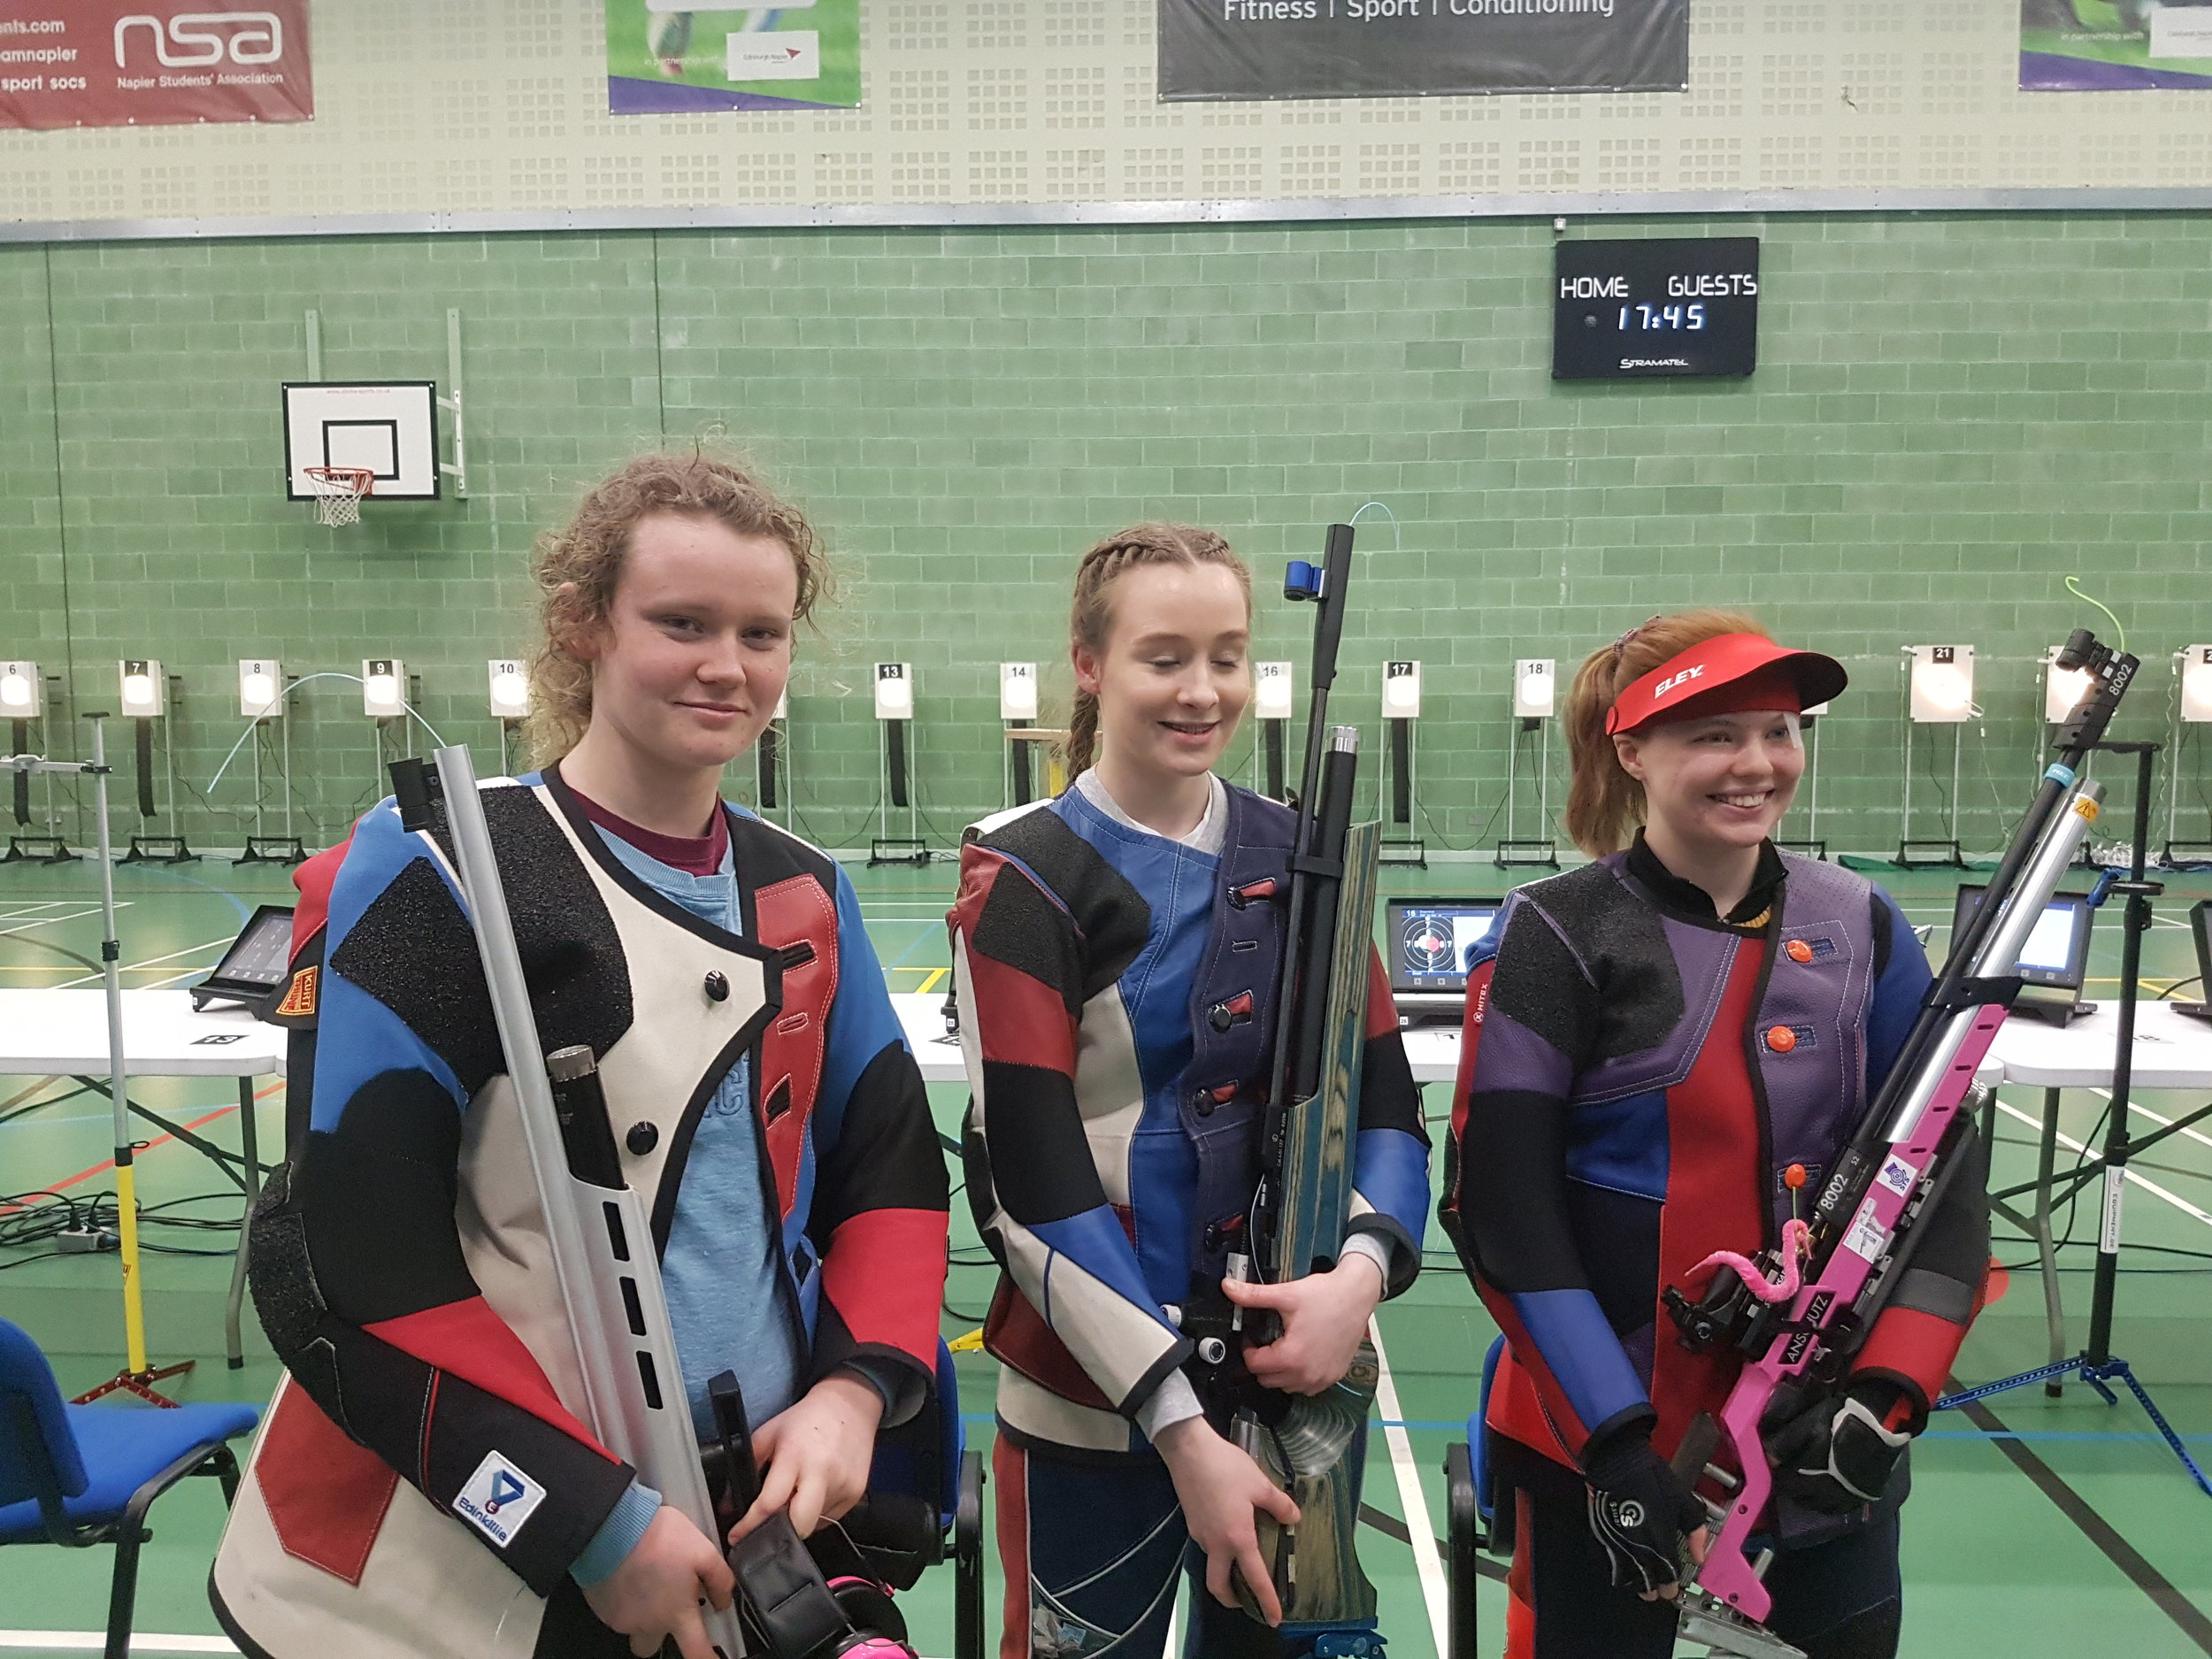 Winners - Women's Junior 10m Air Rifle Championships